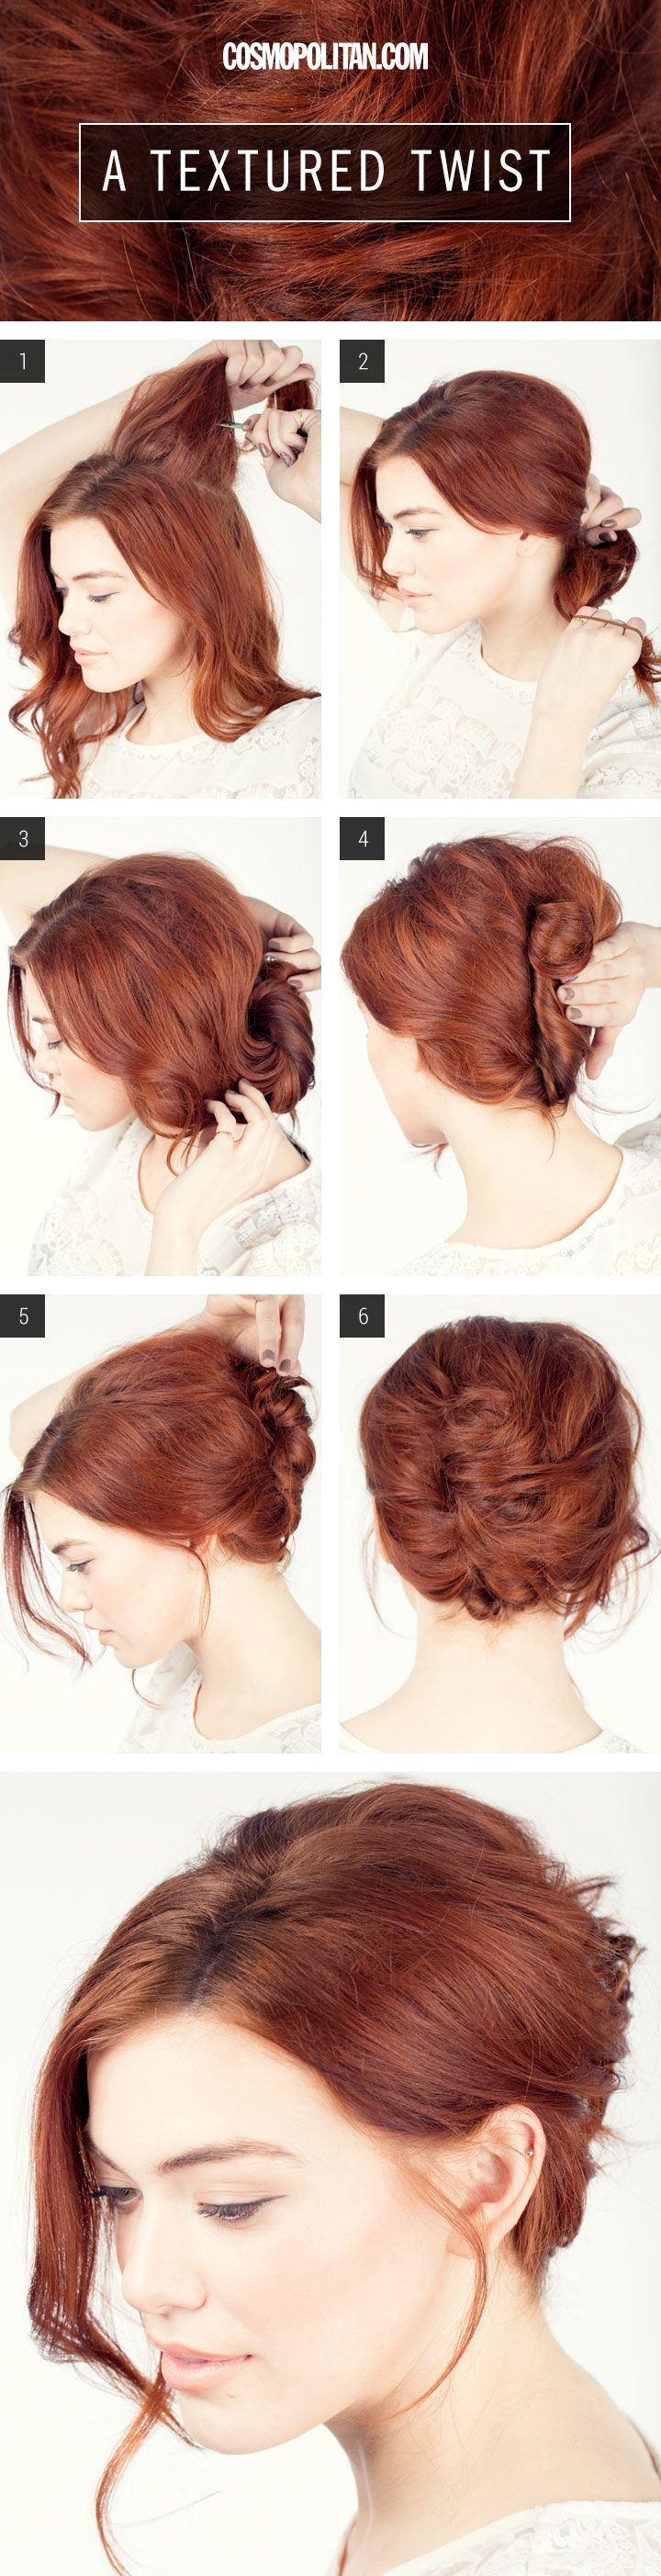 Awesome 25 Best Ideas About Messy French Twists On Pinterest French Short Hairstyles Gunalazisus